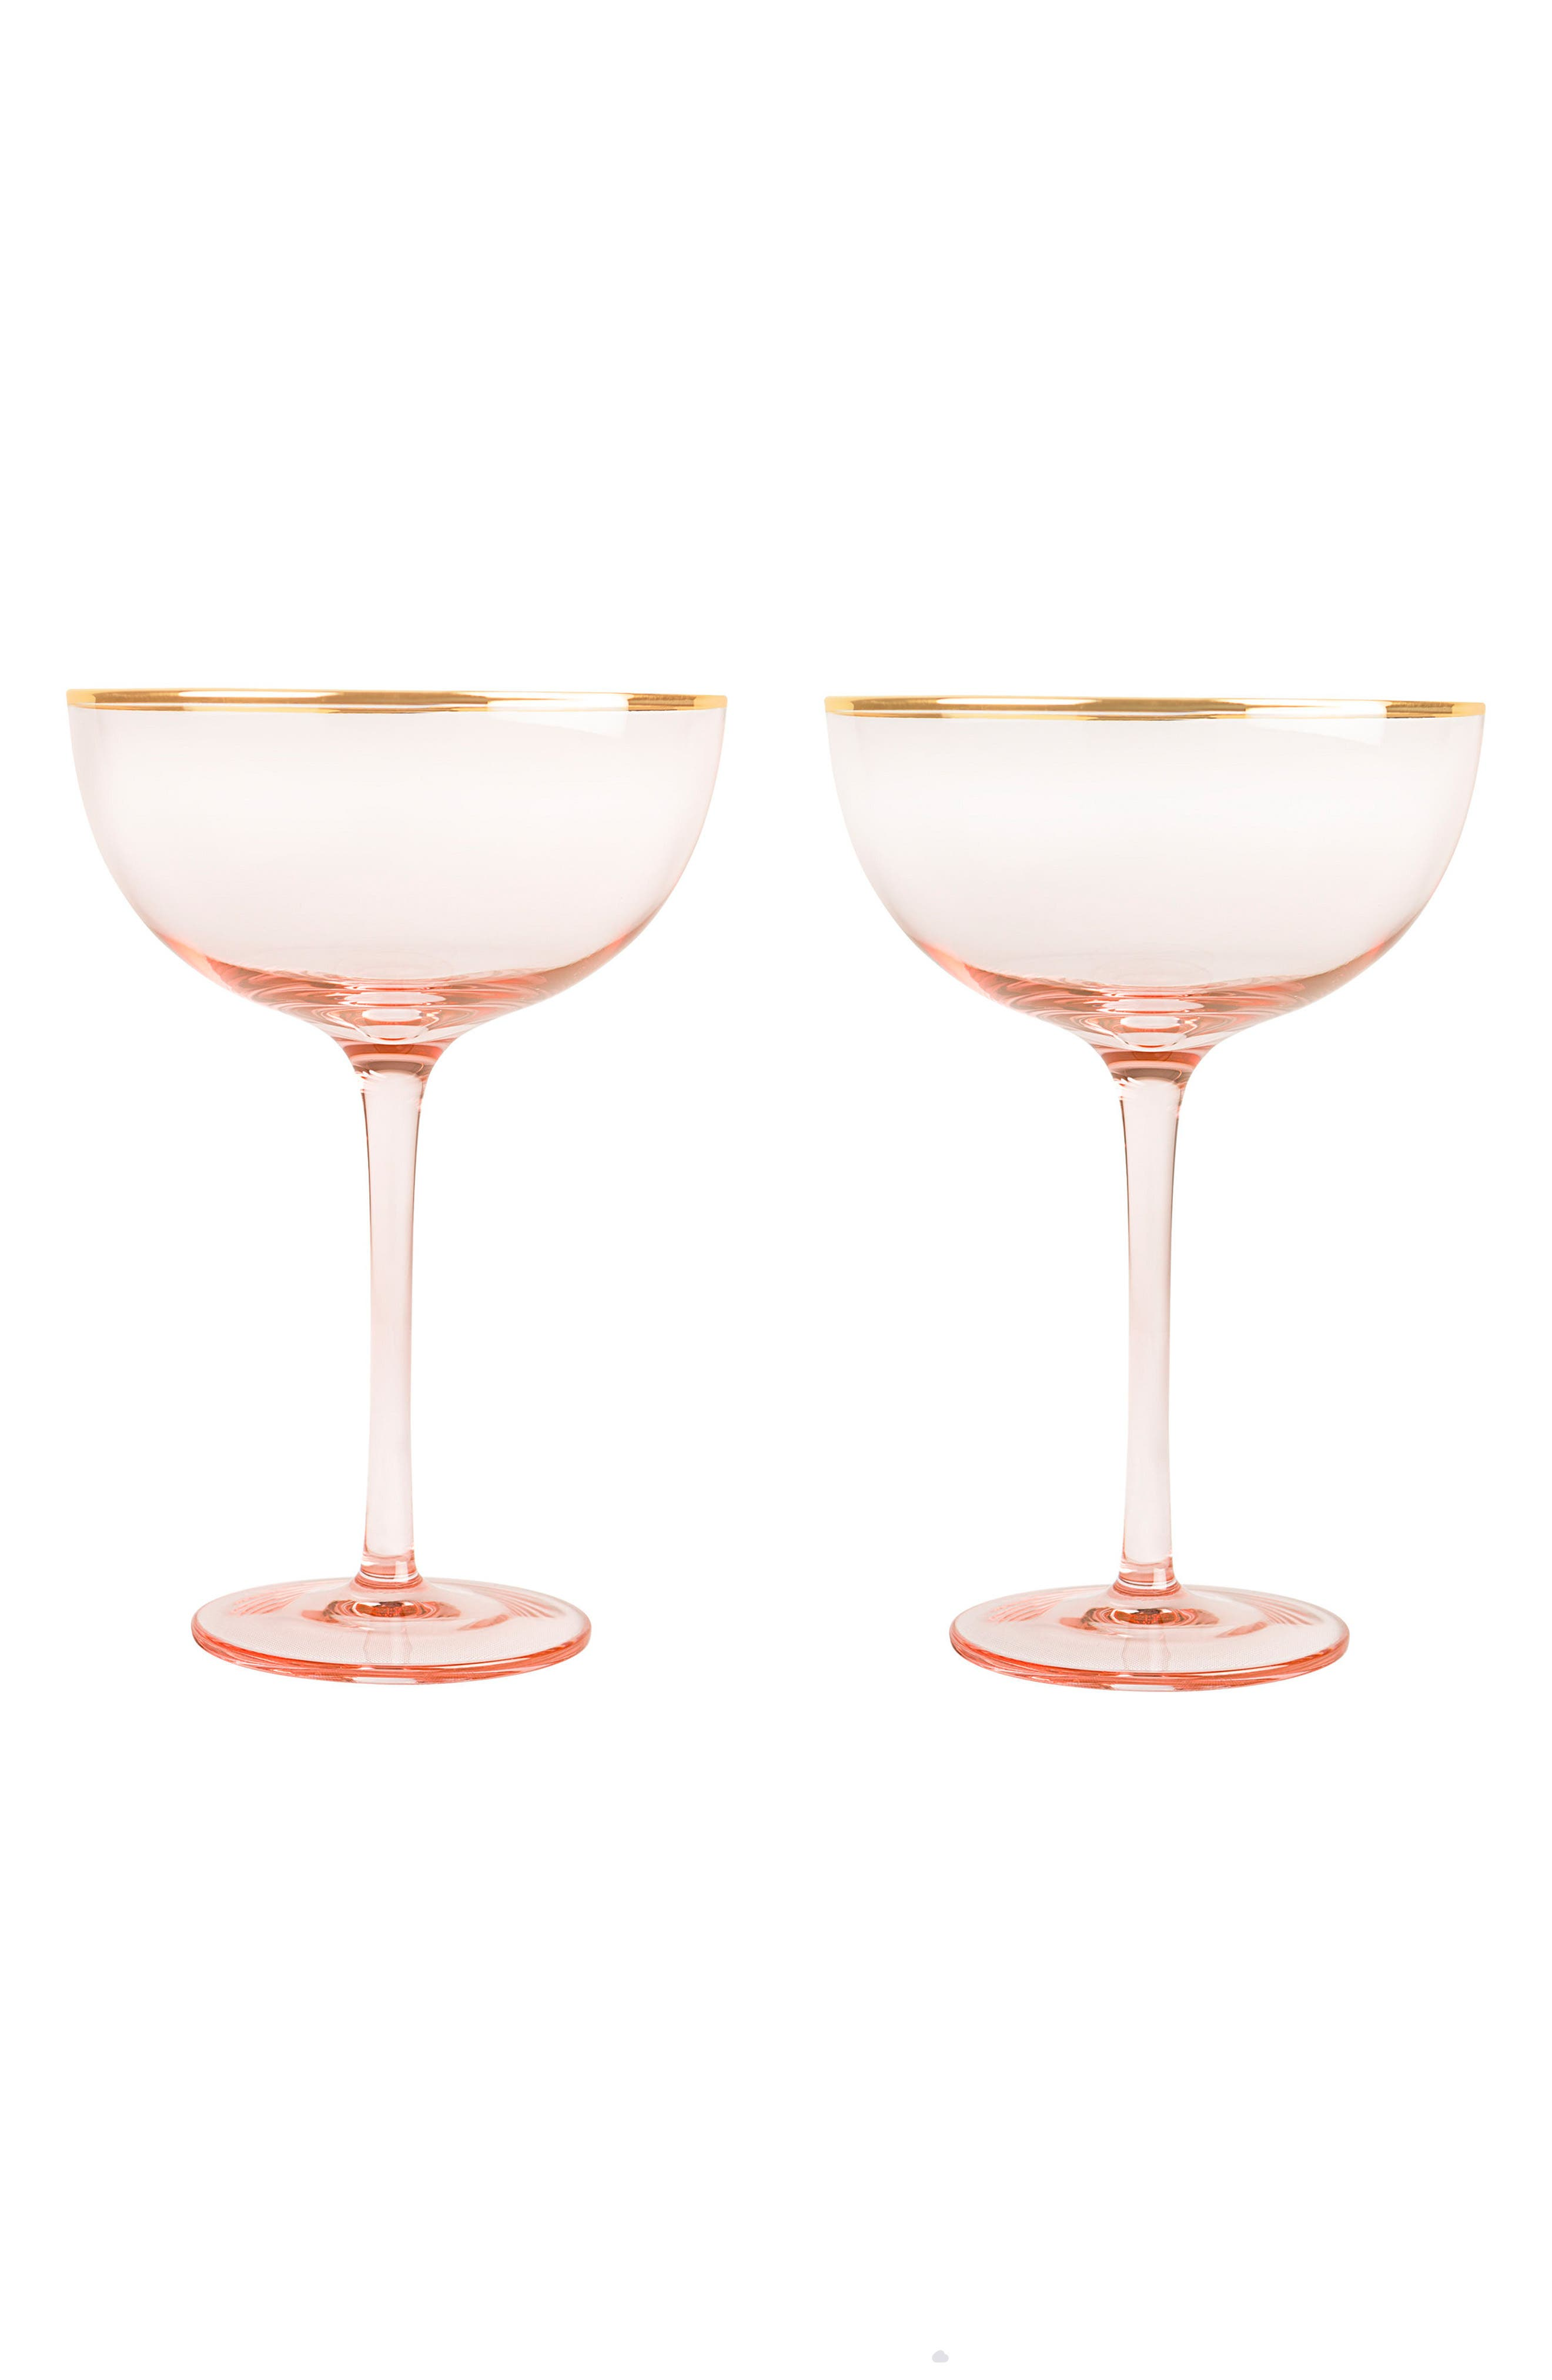 Monogram Set of 2 Champagne Coupes,                             Main thumbnail 1, color,                             Blush